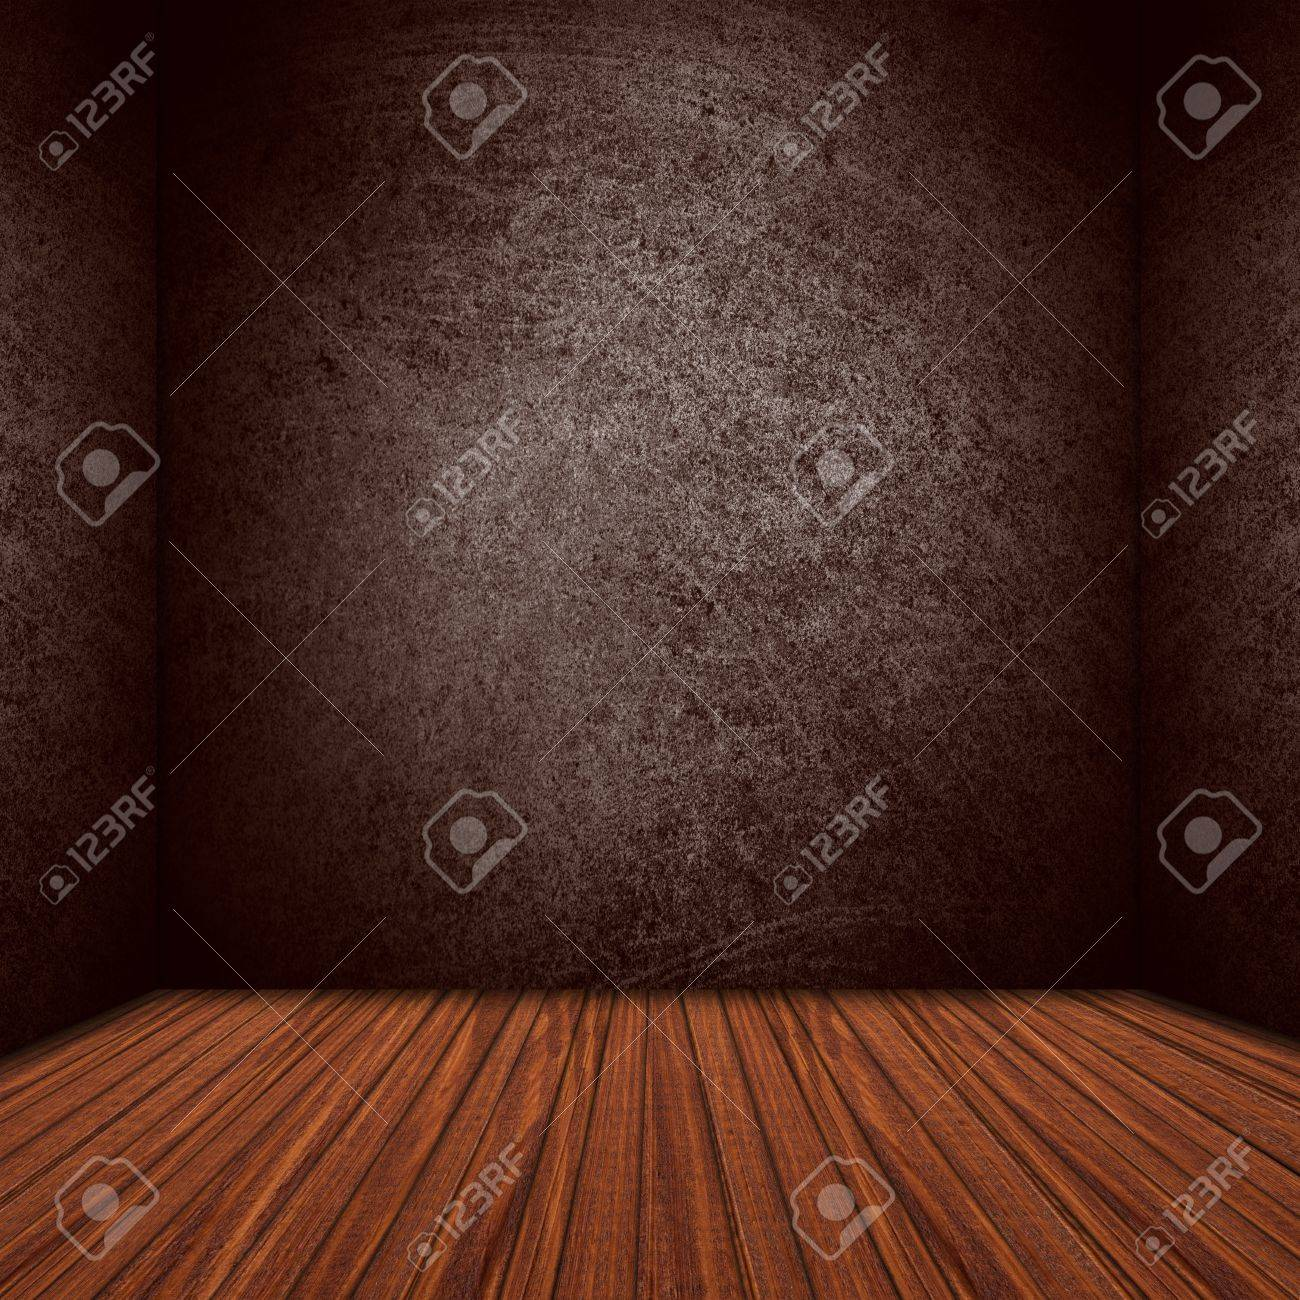 rough vintage wall and brown wooden floor or empty stage as background Stock Photo - 17552119